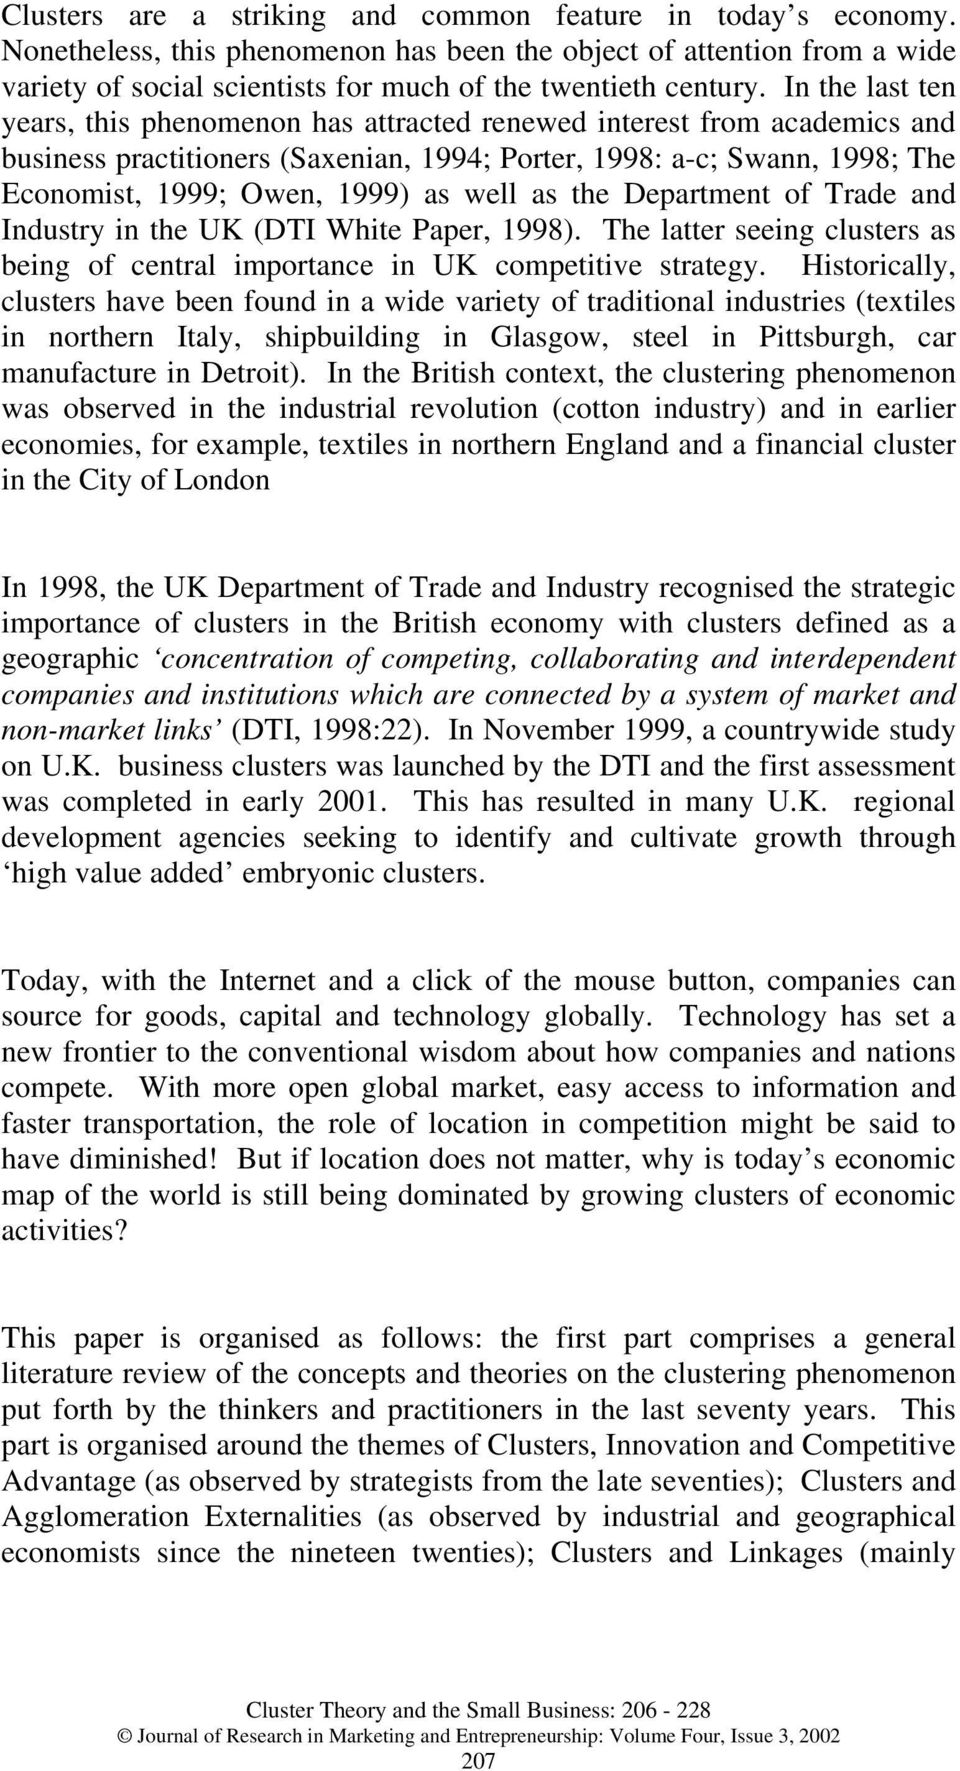 well as the Department of Trade and Industry in the UK (DTI White Paper, 1998). The latter seeing clusters as being of central importance in UK competitive strategy.